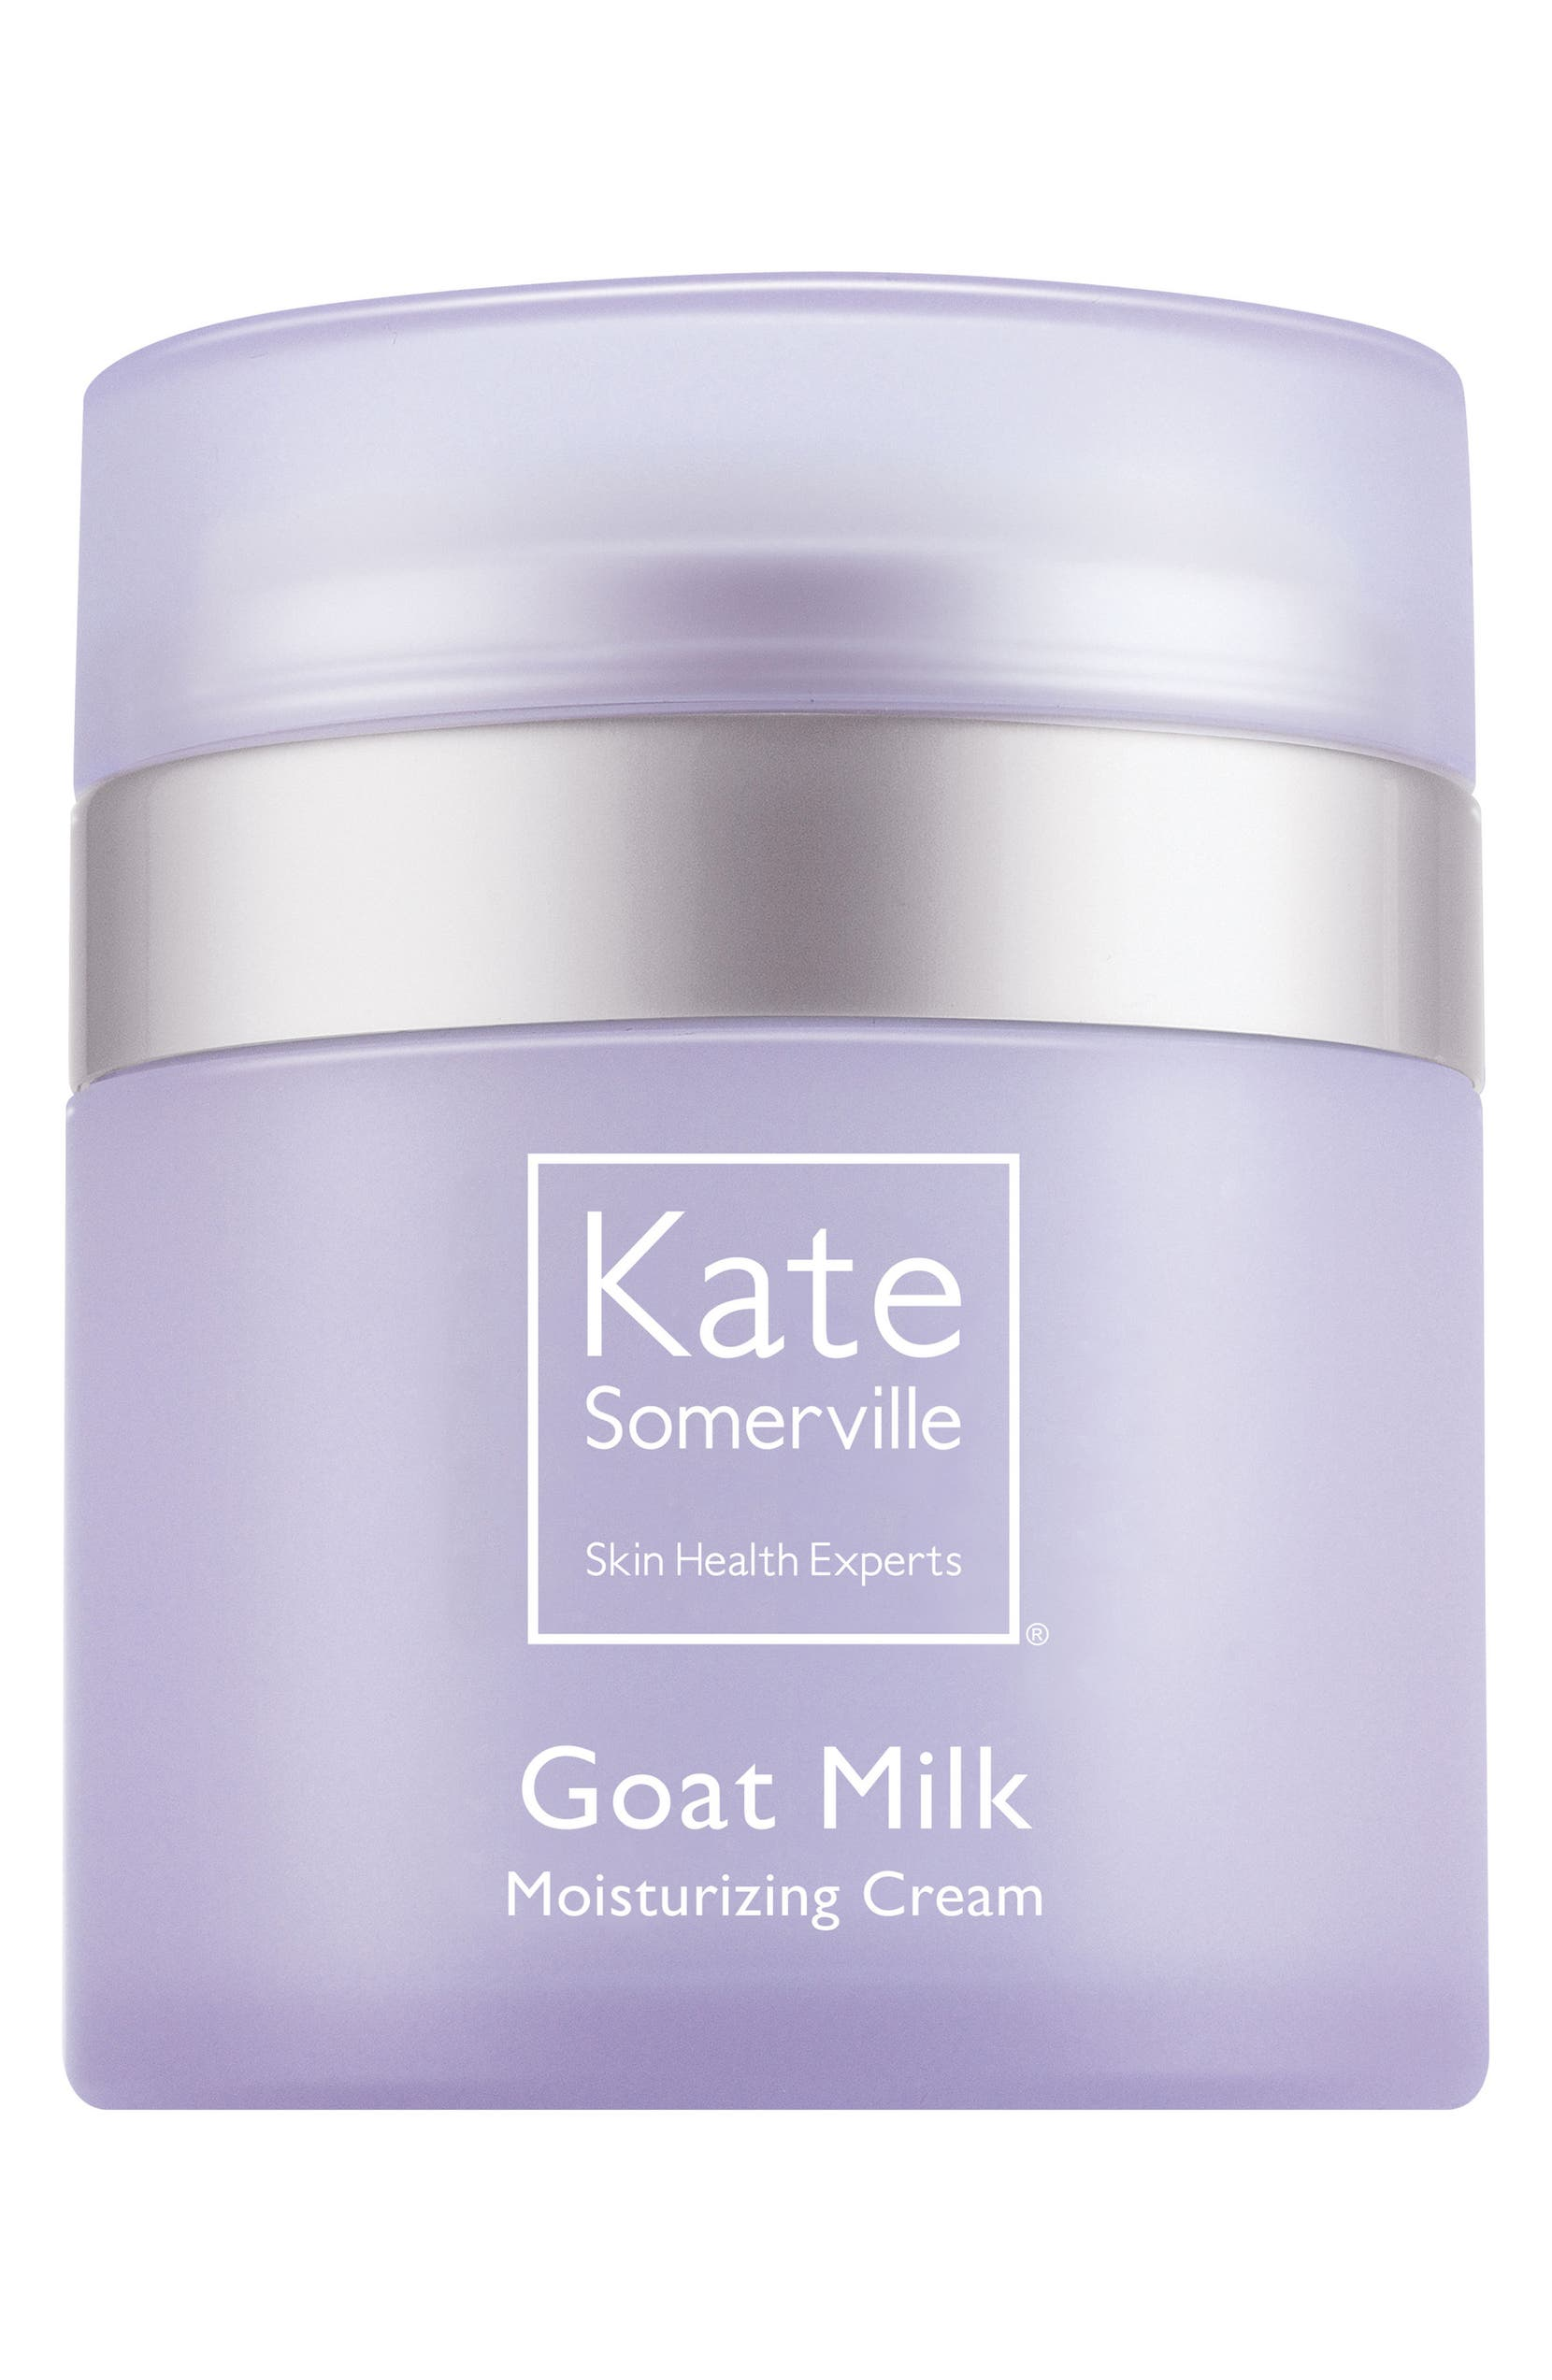 Kate Somerville Goat Milk Moisturizing Cream Nordstrom